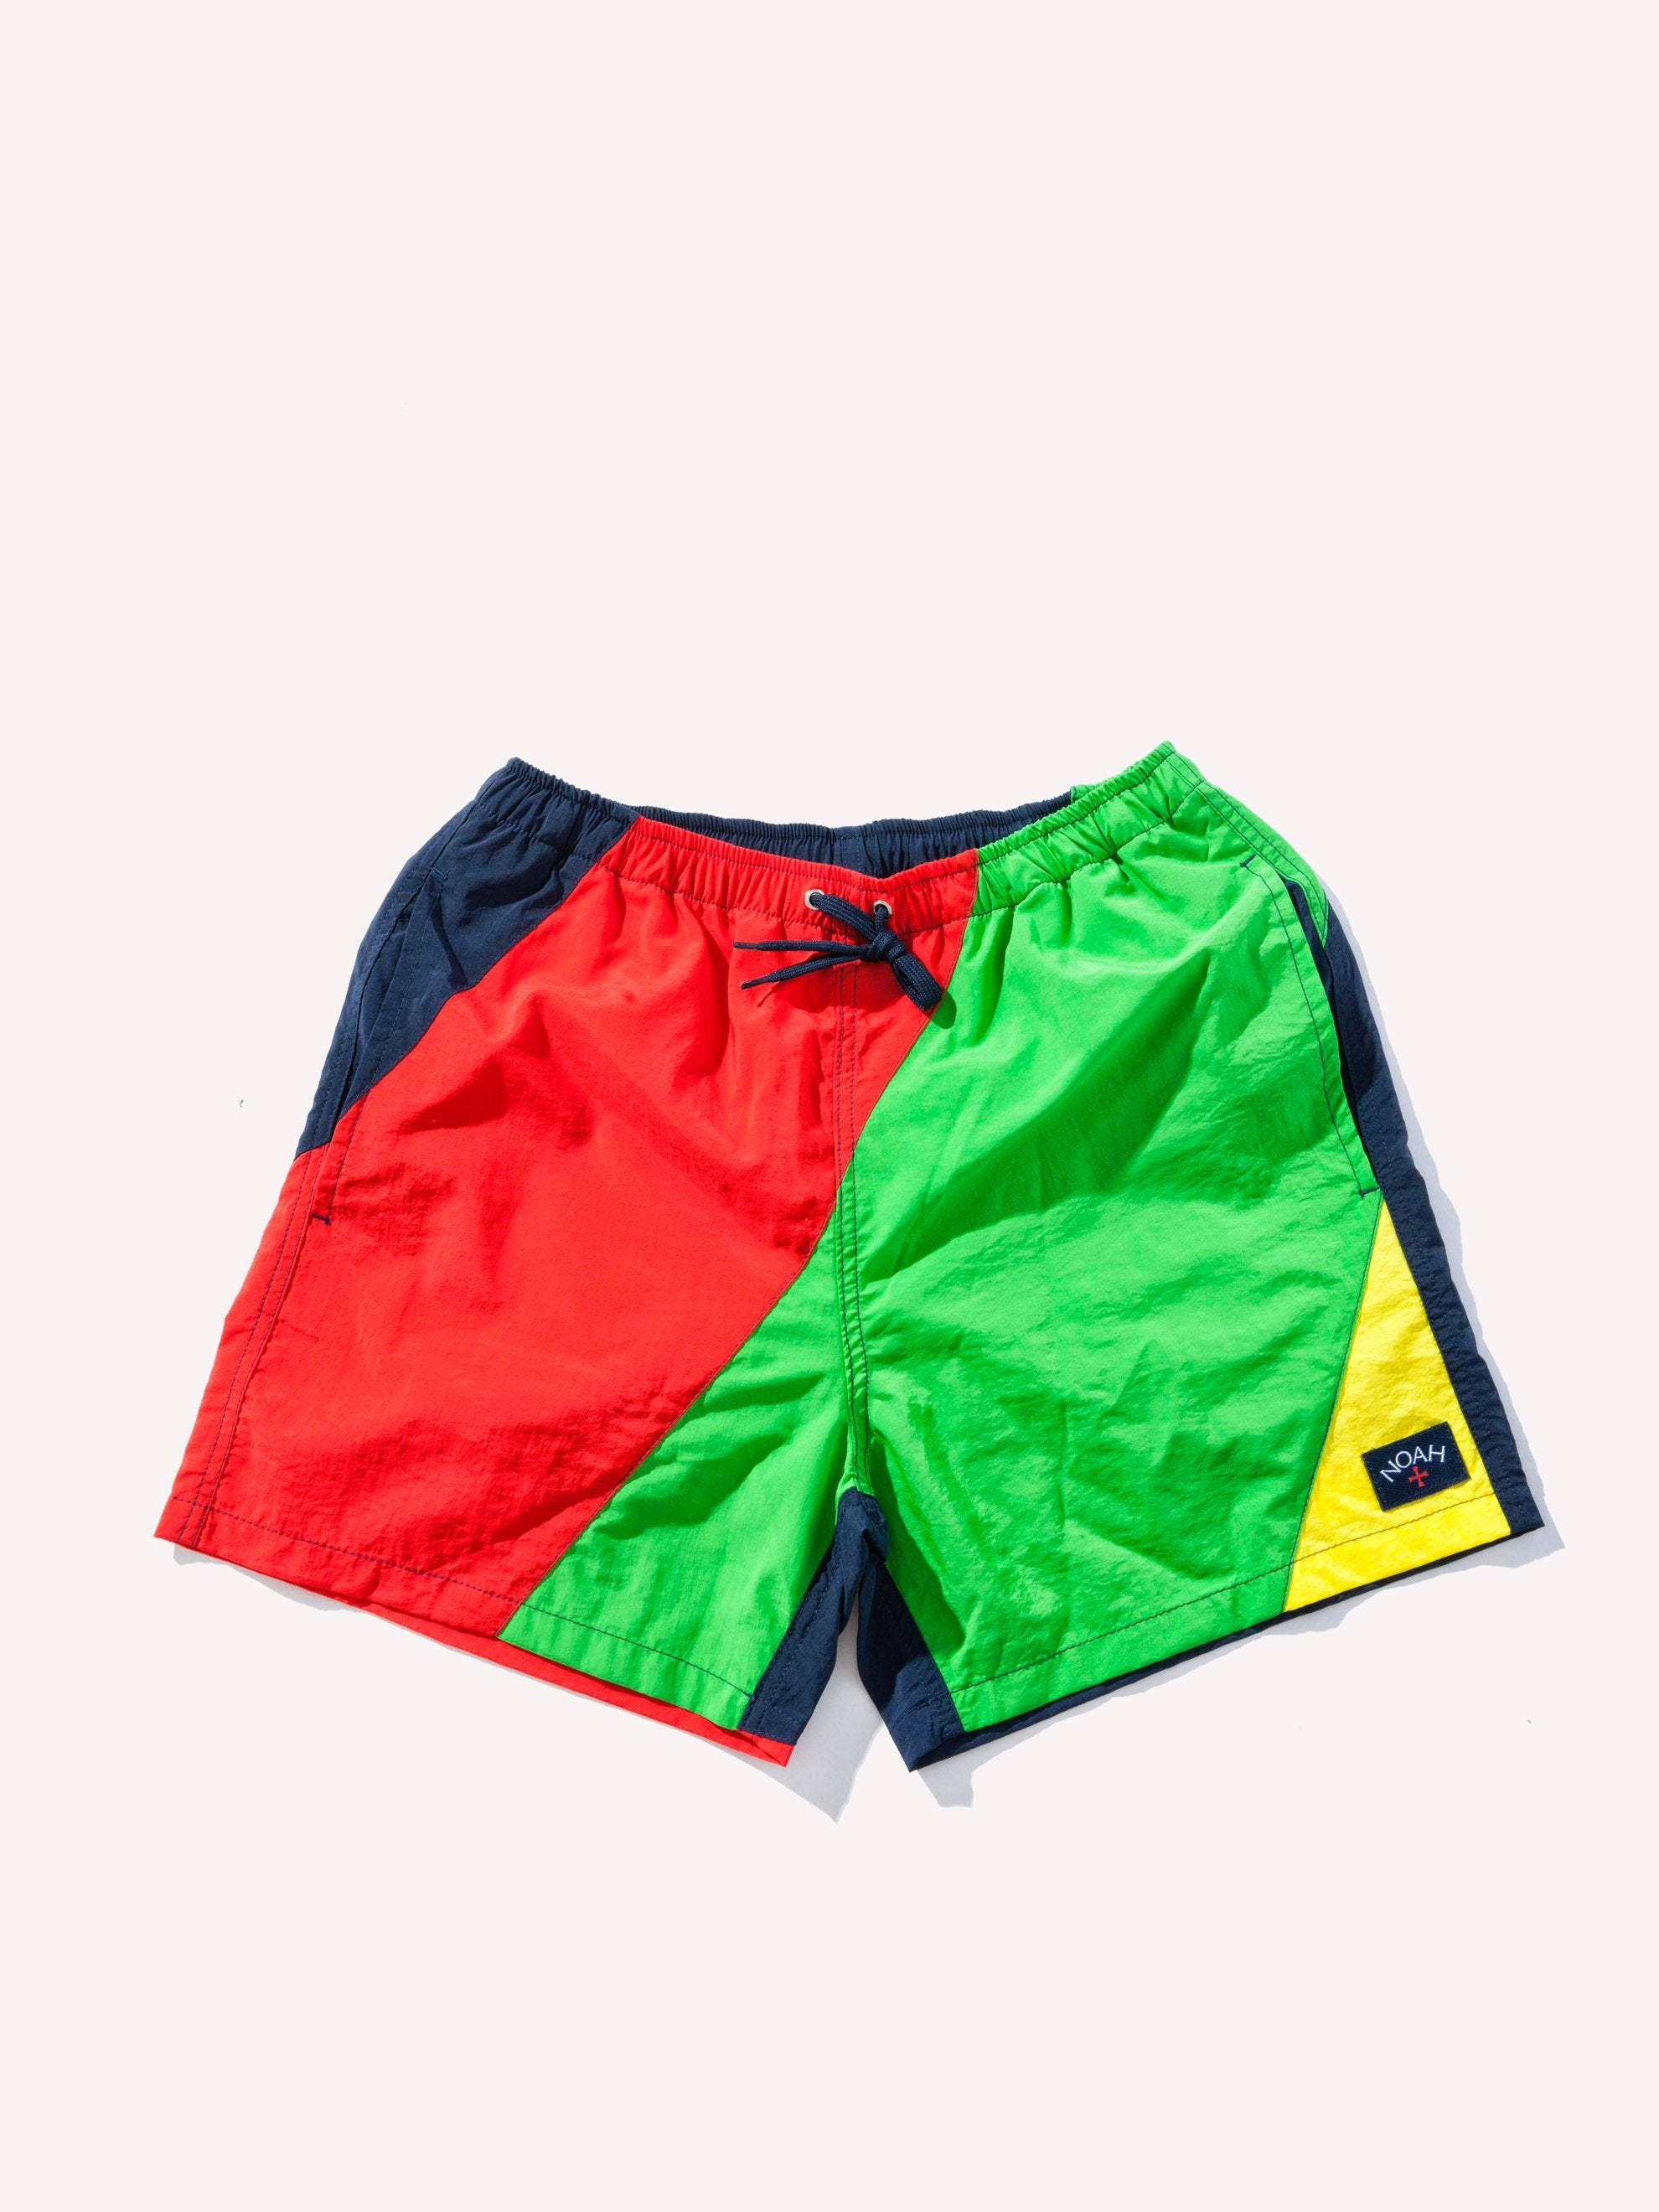 Navy/Red/Green Sunfish Short 1